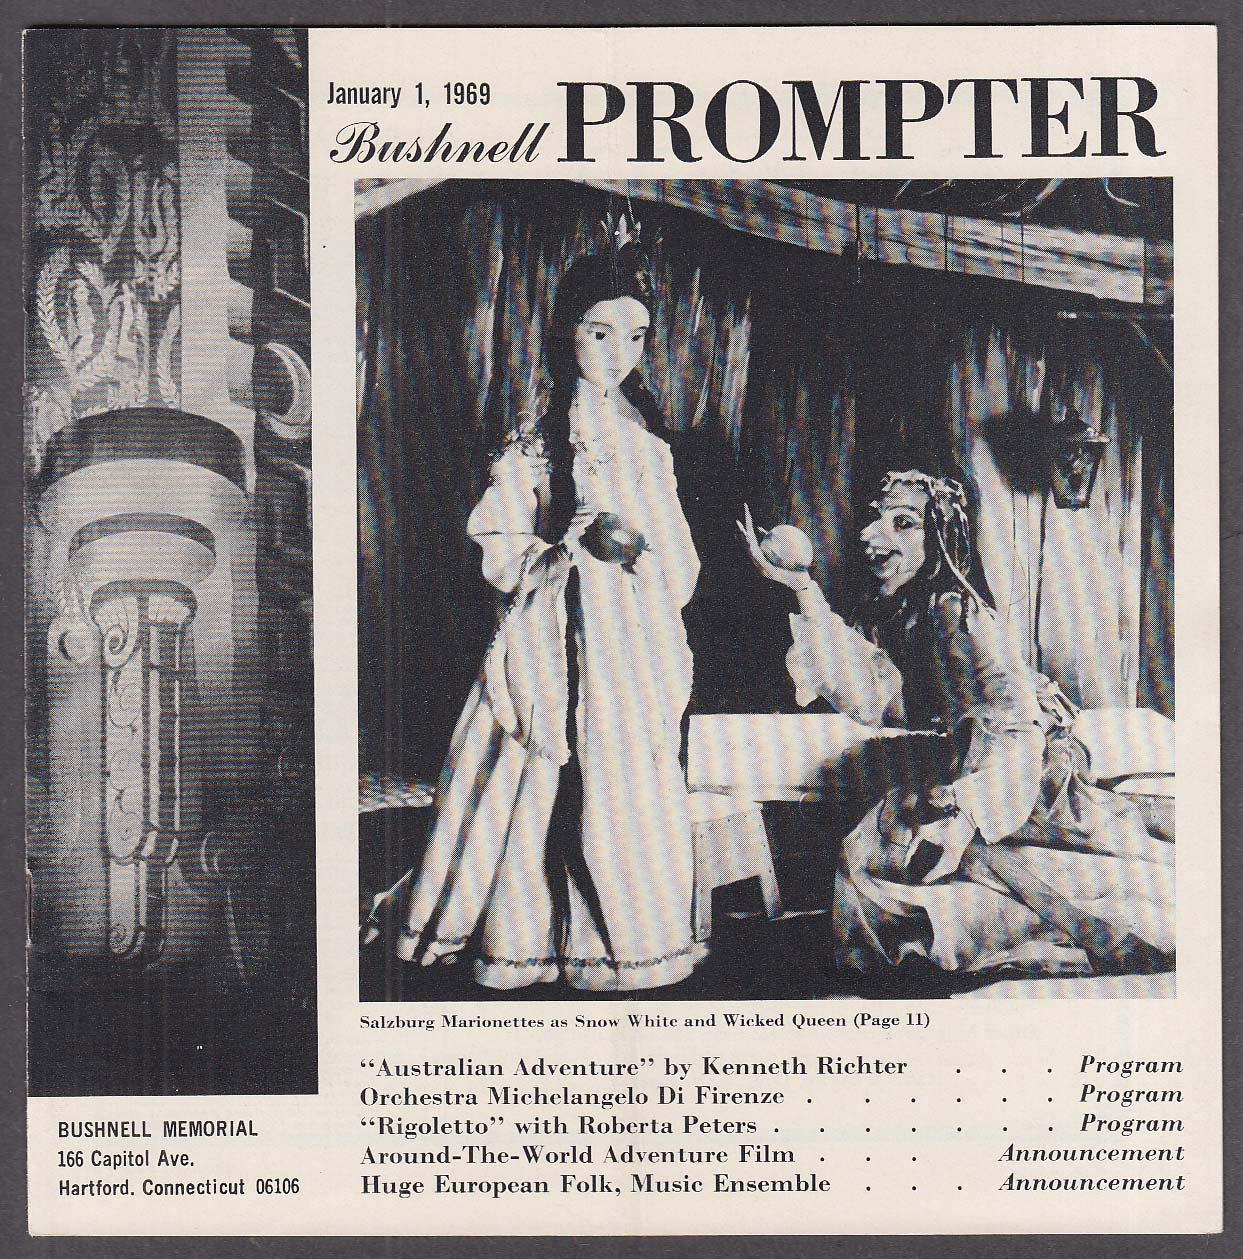 Image for Roberta Peters Rigoletto Bushnell Prompter 1/1969 CT